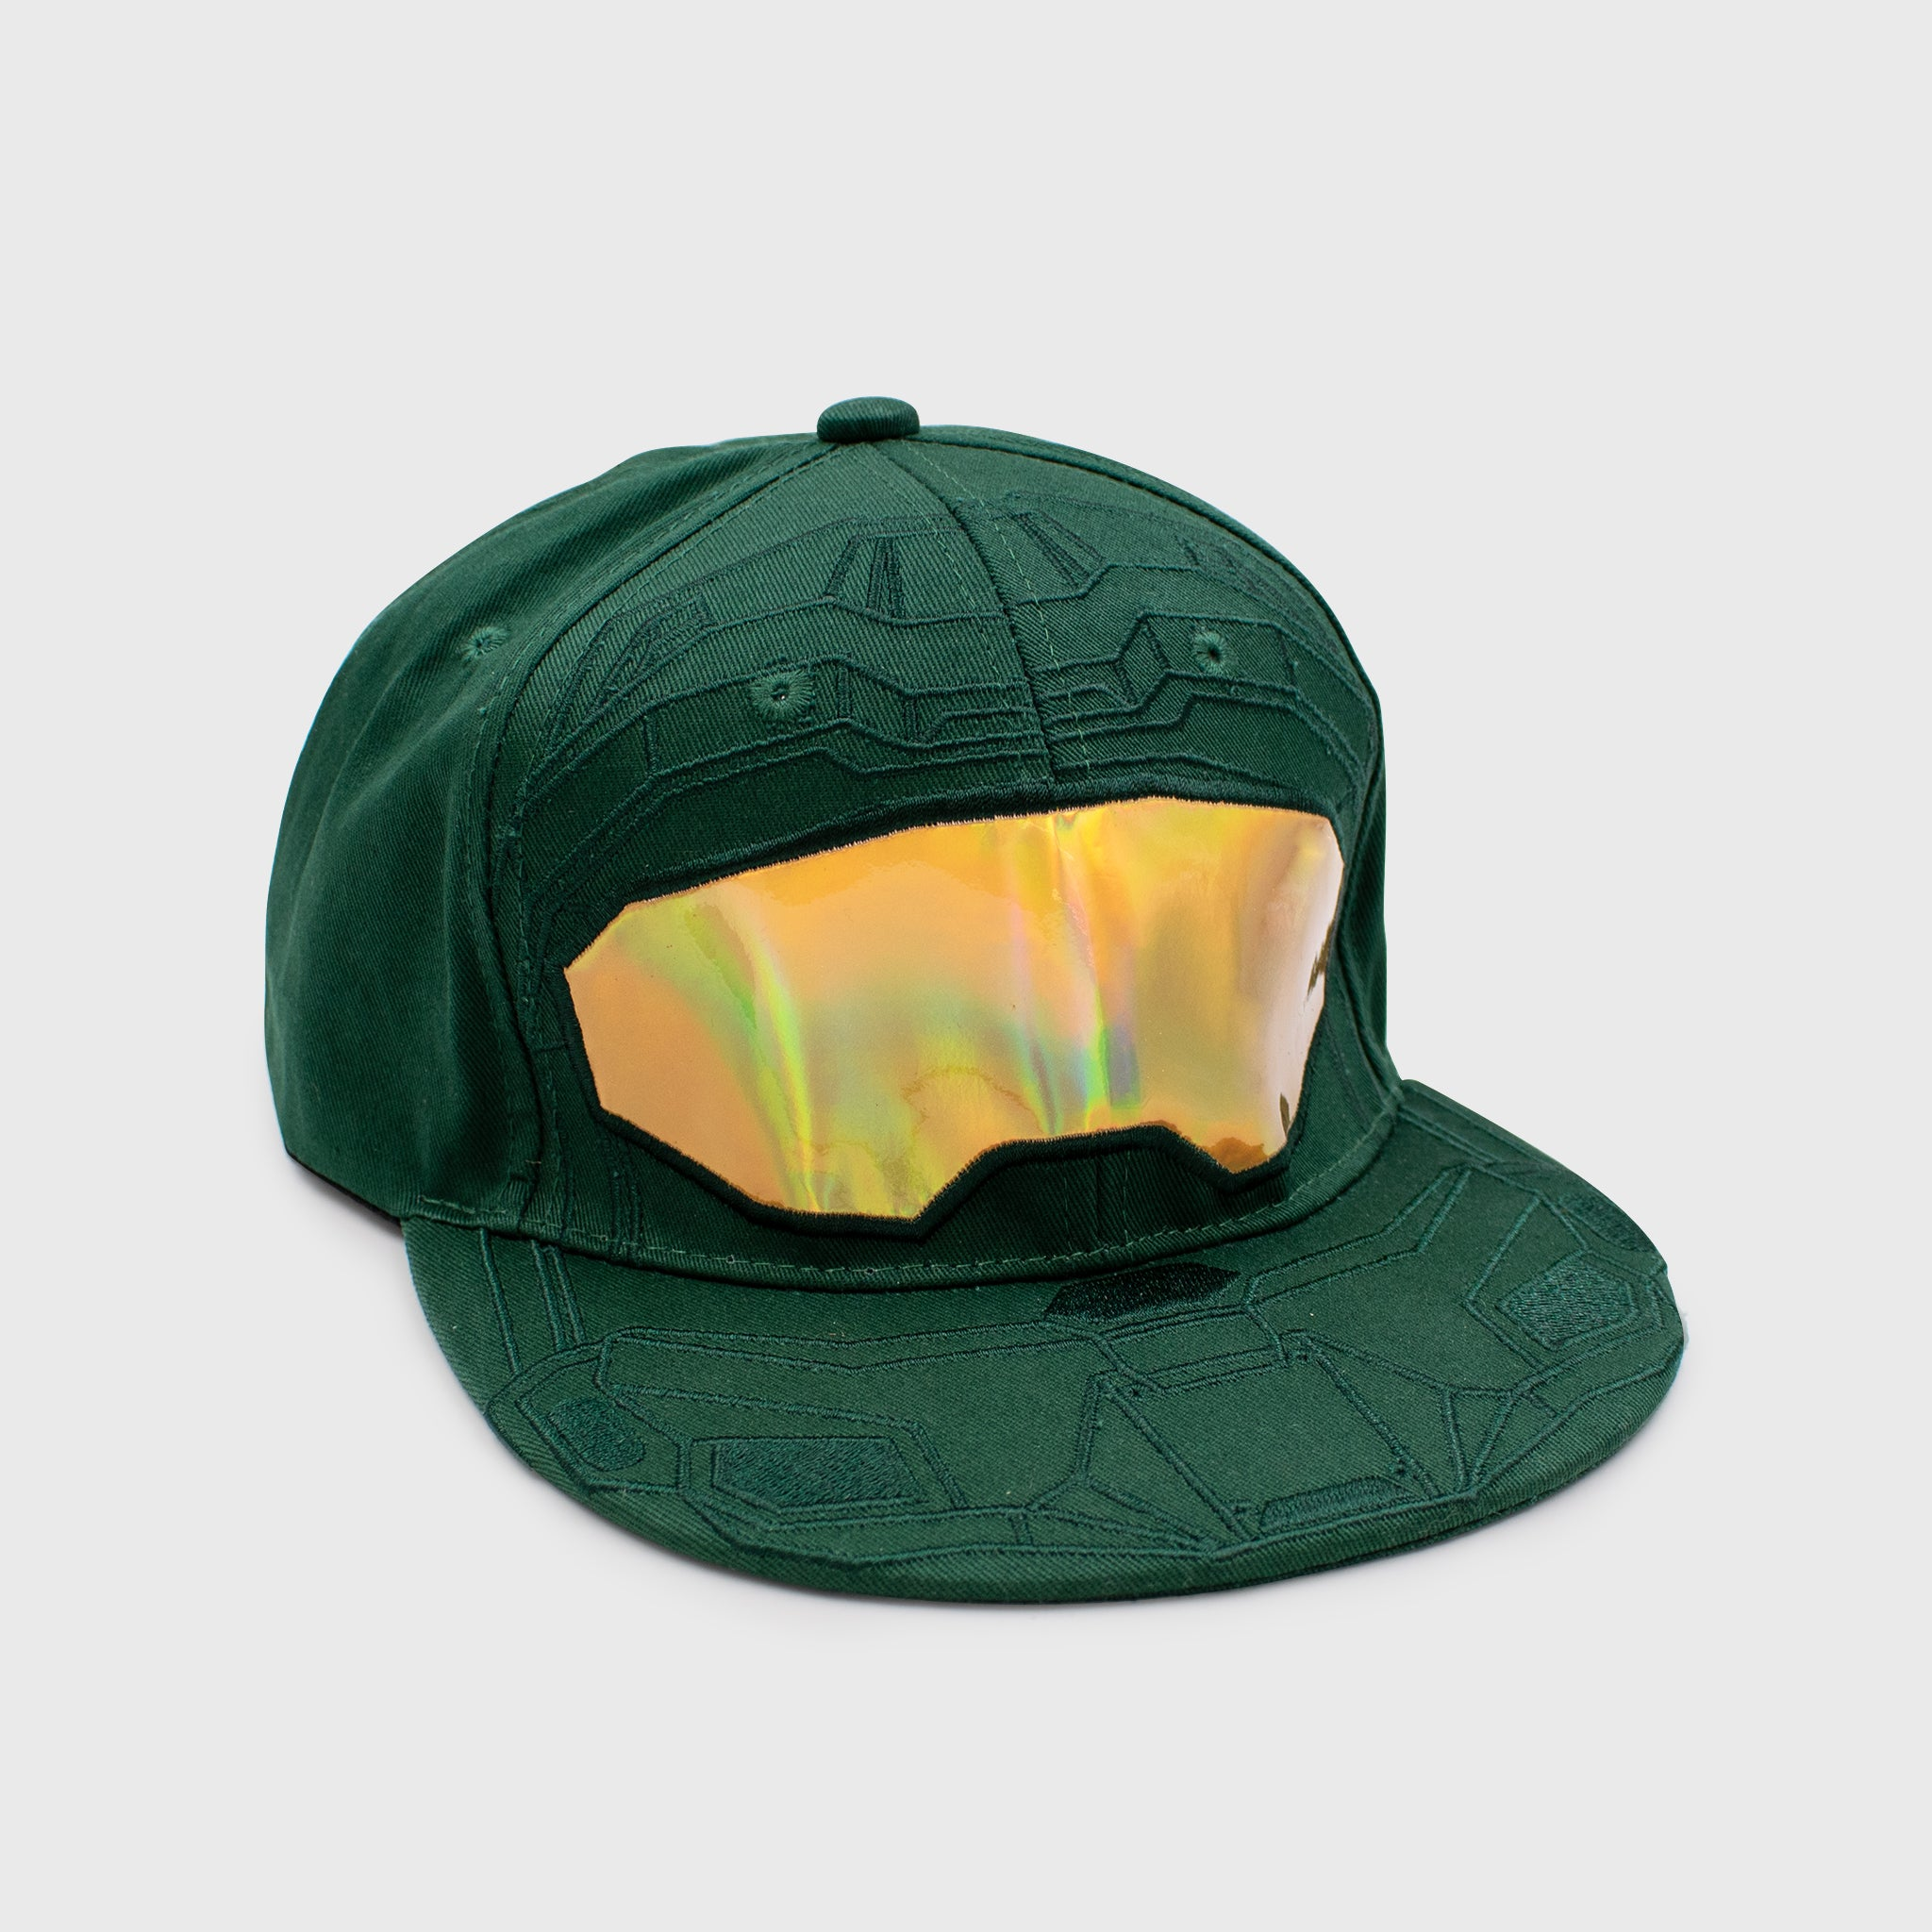 halo infinite master chief video games exclusive collectibles collection gaming culturefly hat headwear accessory cap